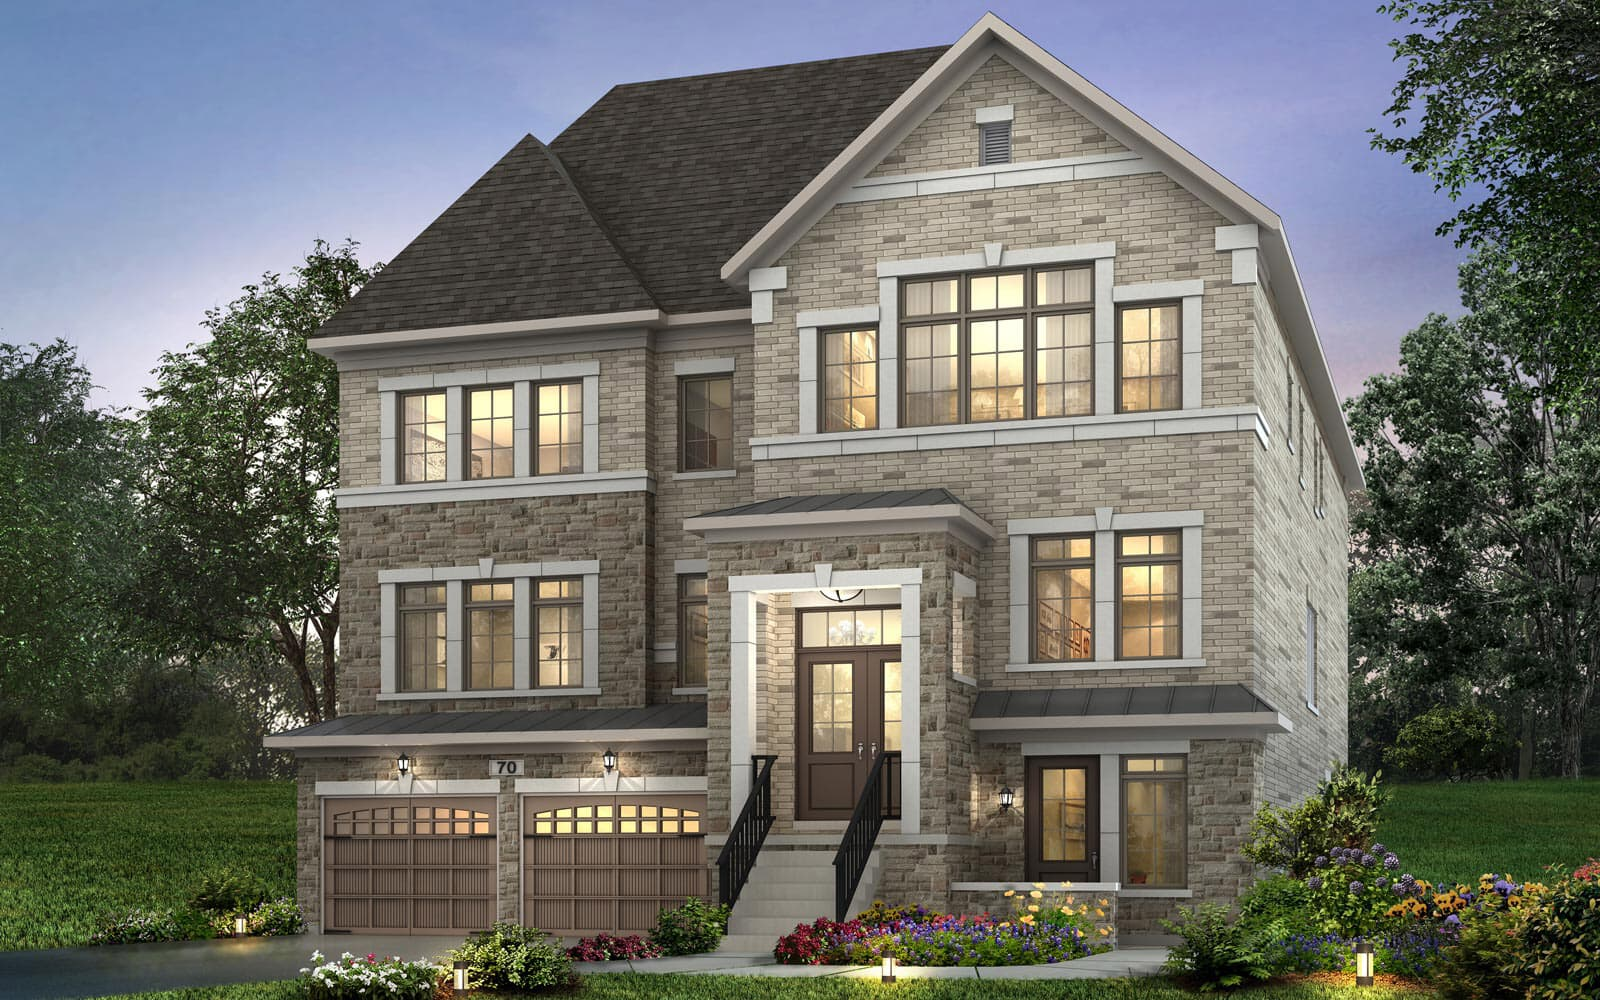 Exterior Fairford Style B Fairford at Pathways in Caledon East Caledon ON Brookfield Residential